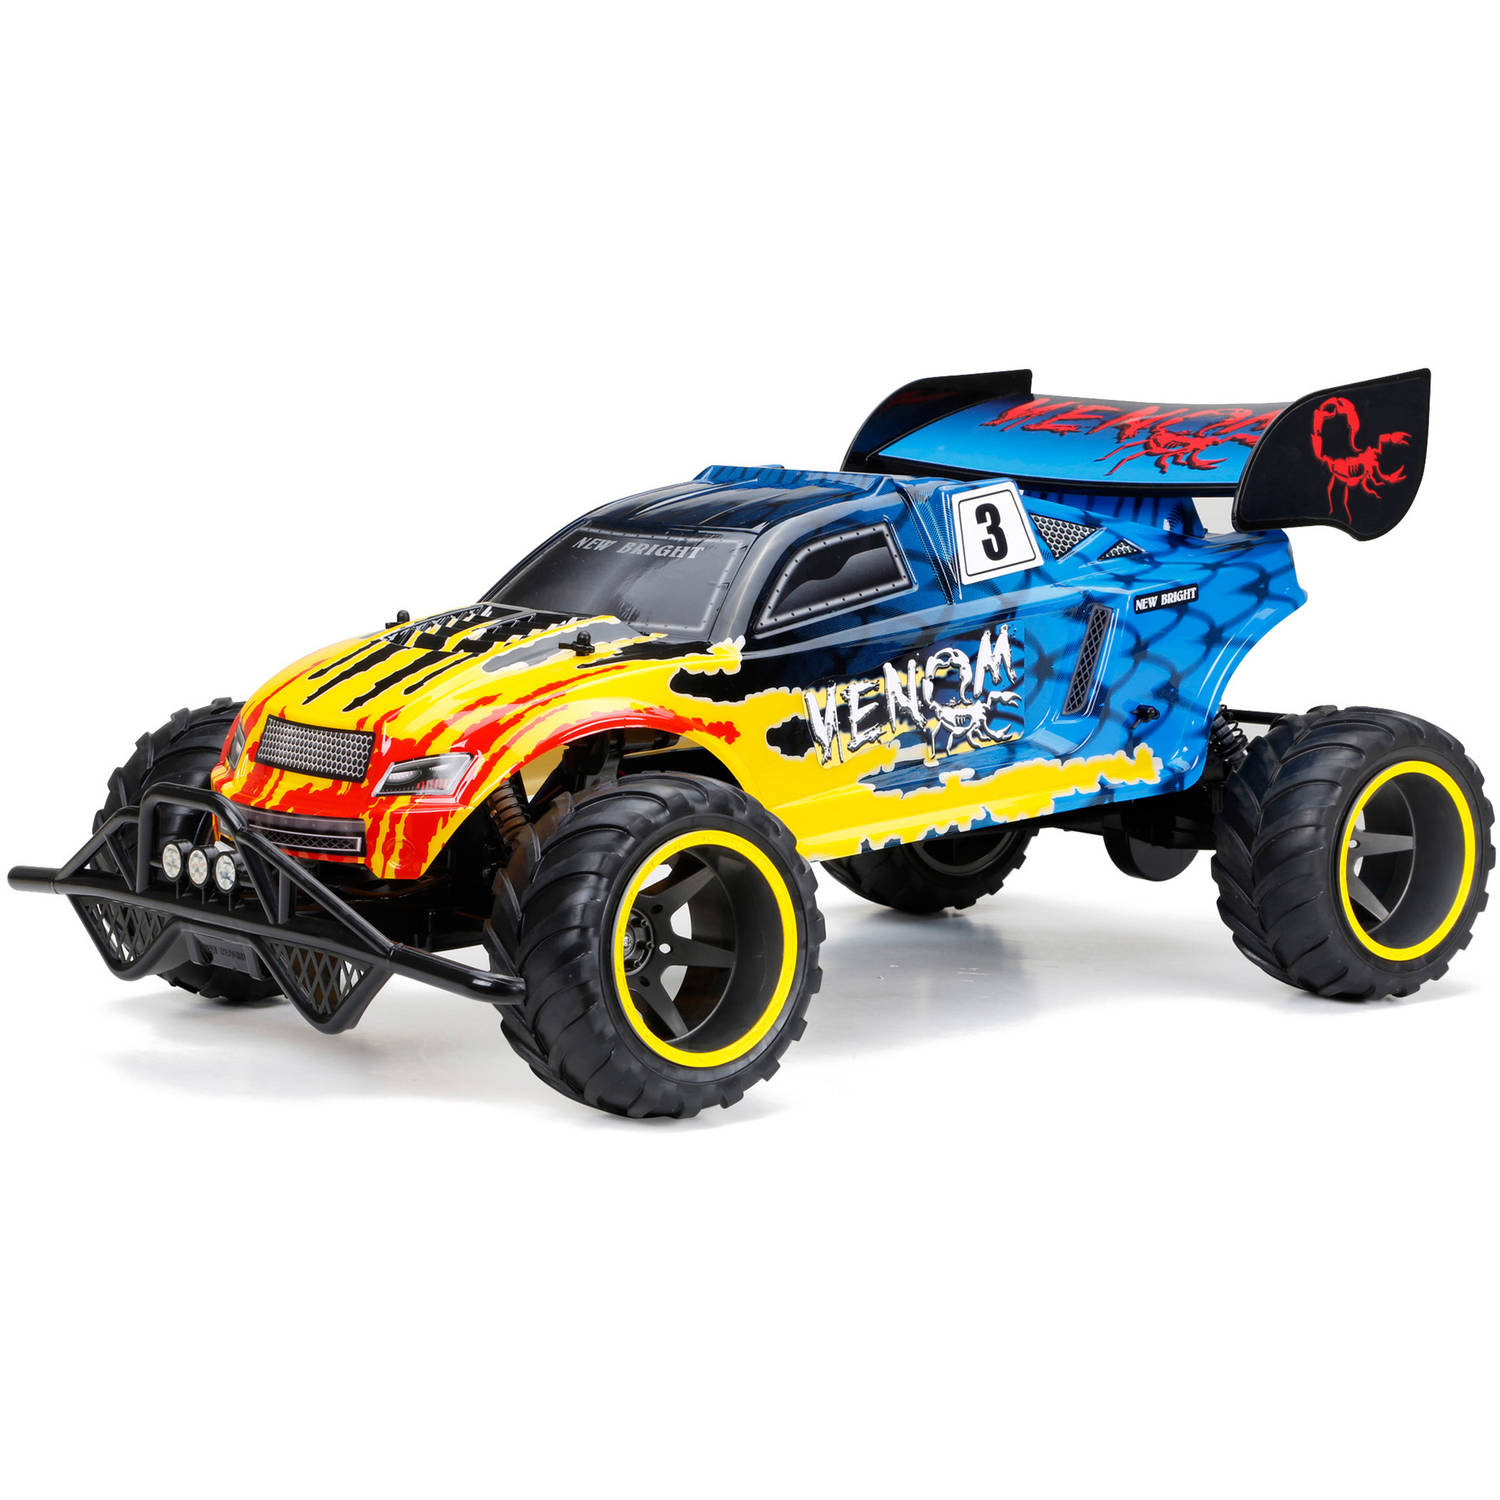 New Bright 1:6 Full-Function 9.6V Venom R/C Car, Blue